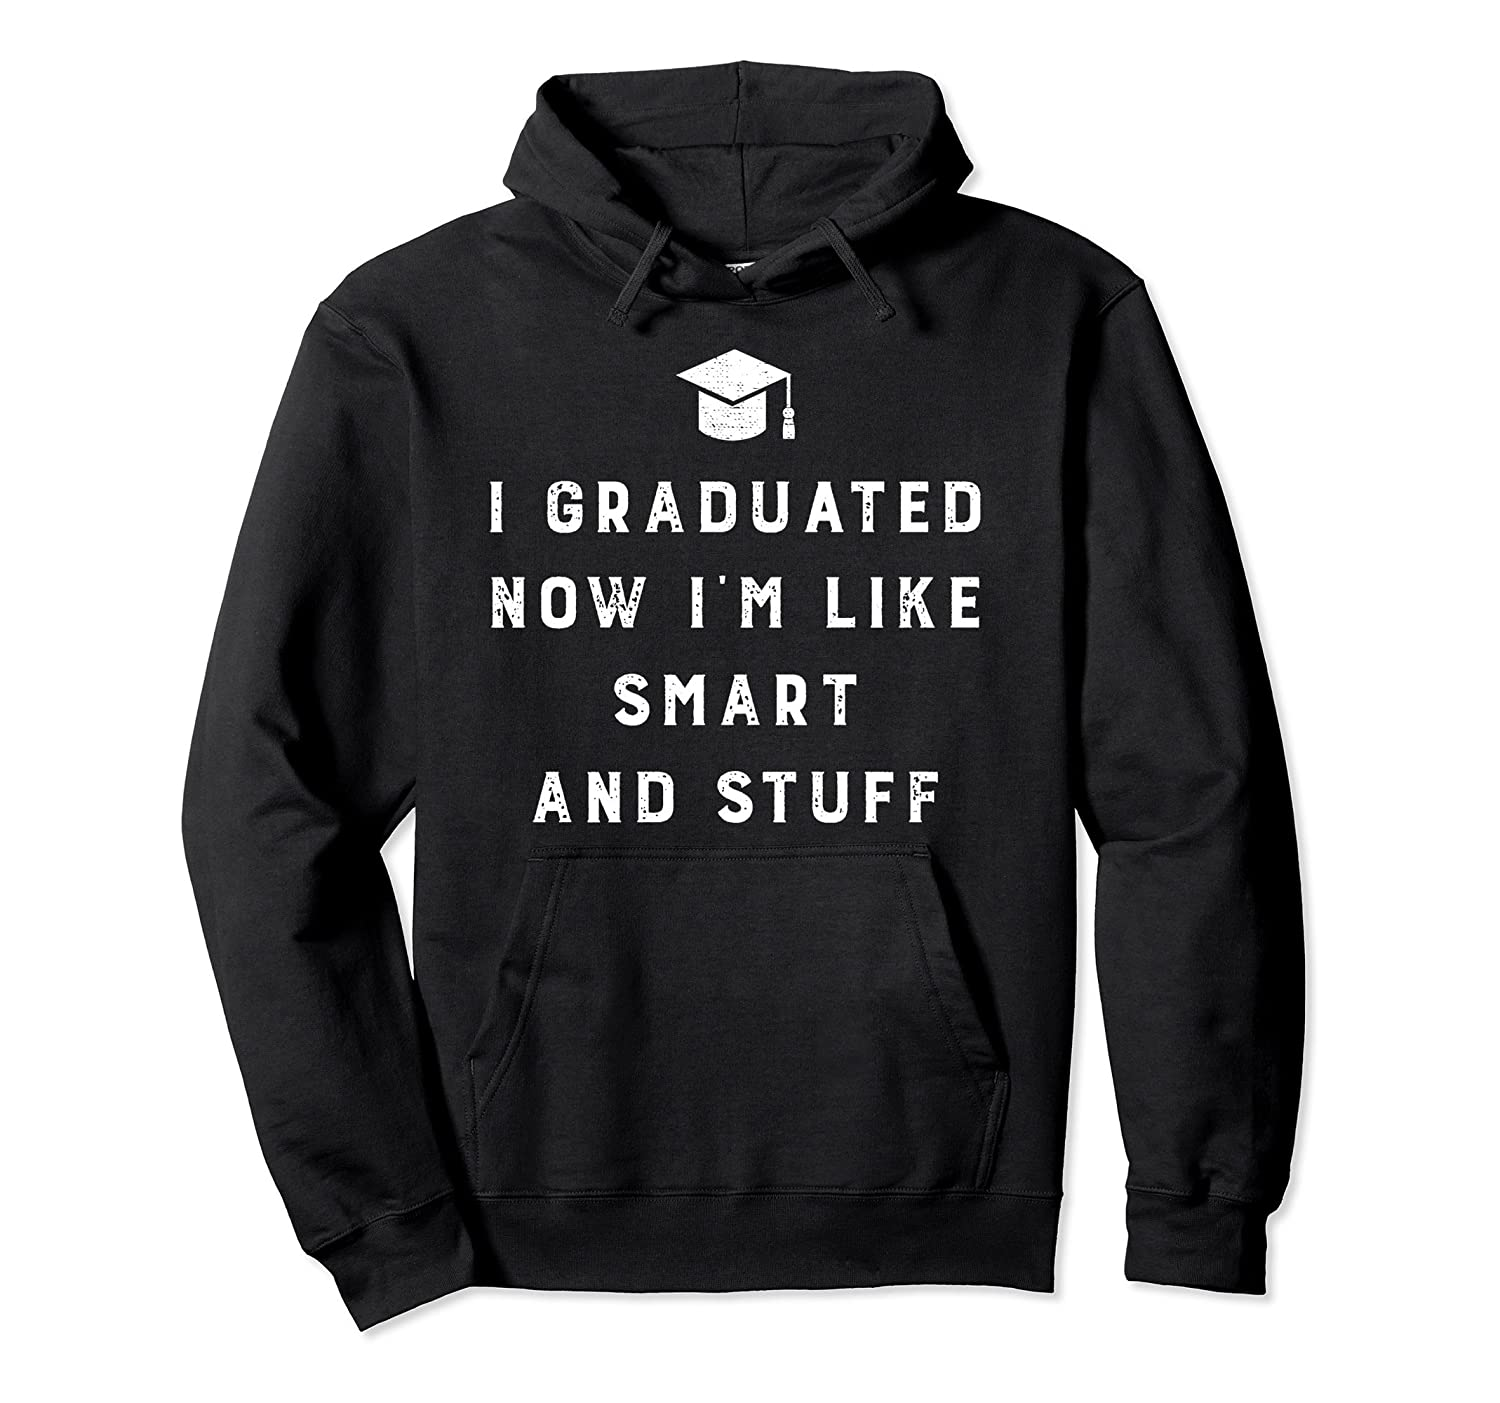 Graduation Hoodie - I Graduated Now I'm Like Smart and Stuff-fa